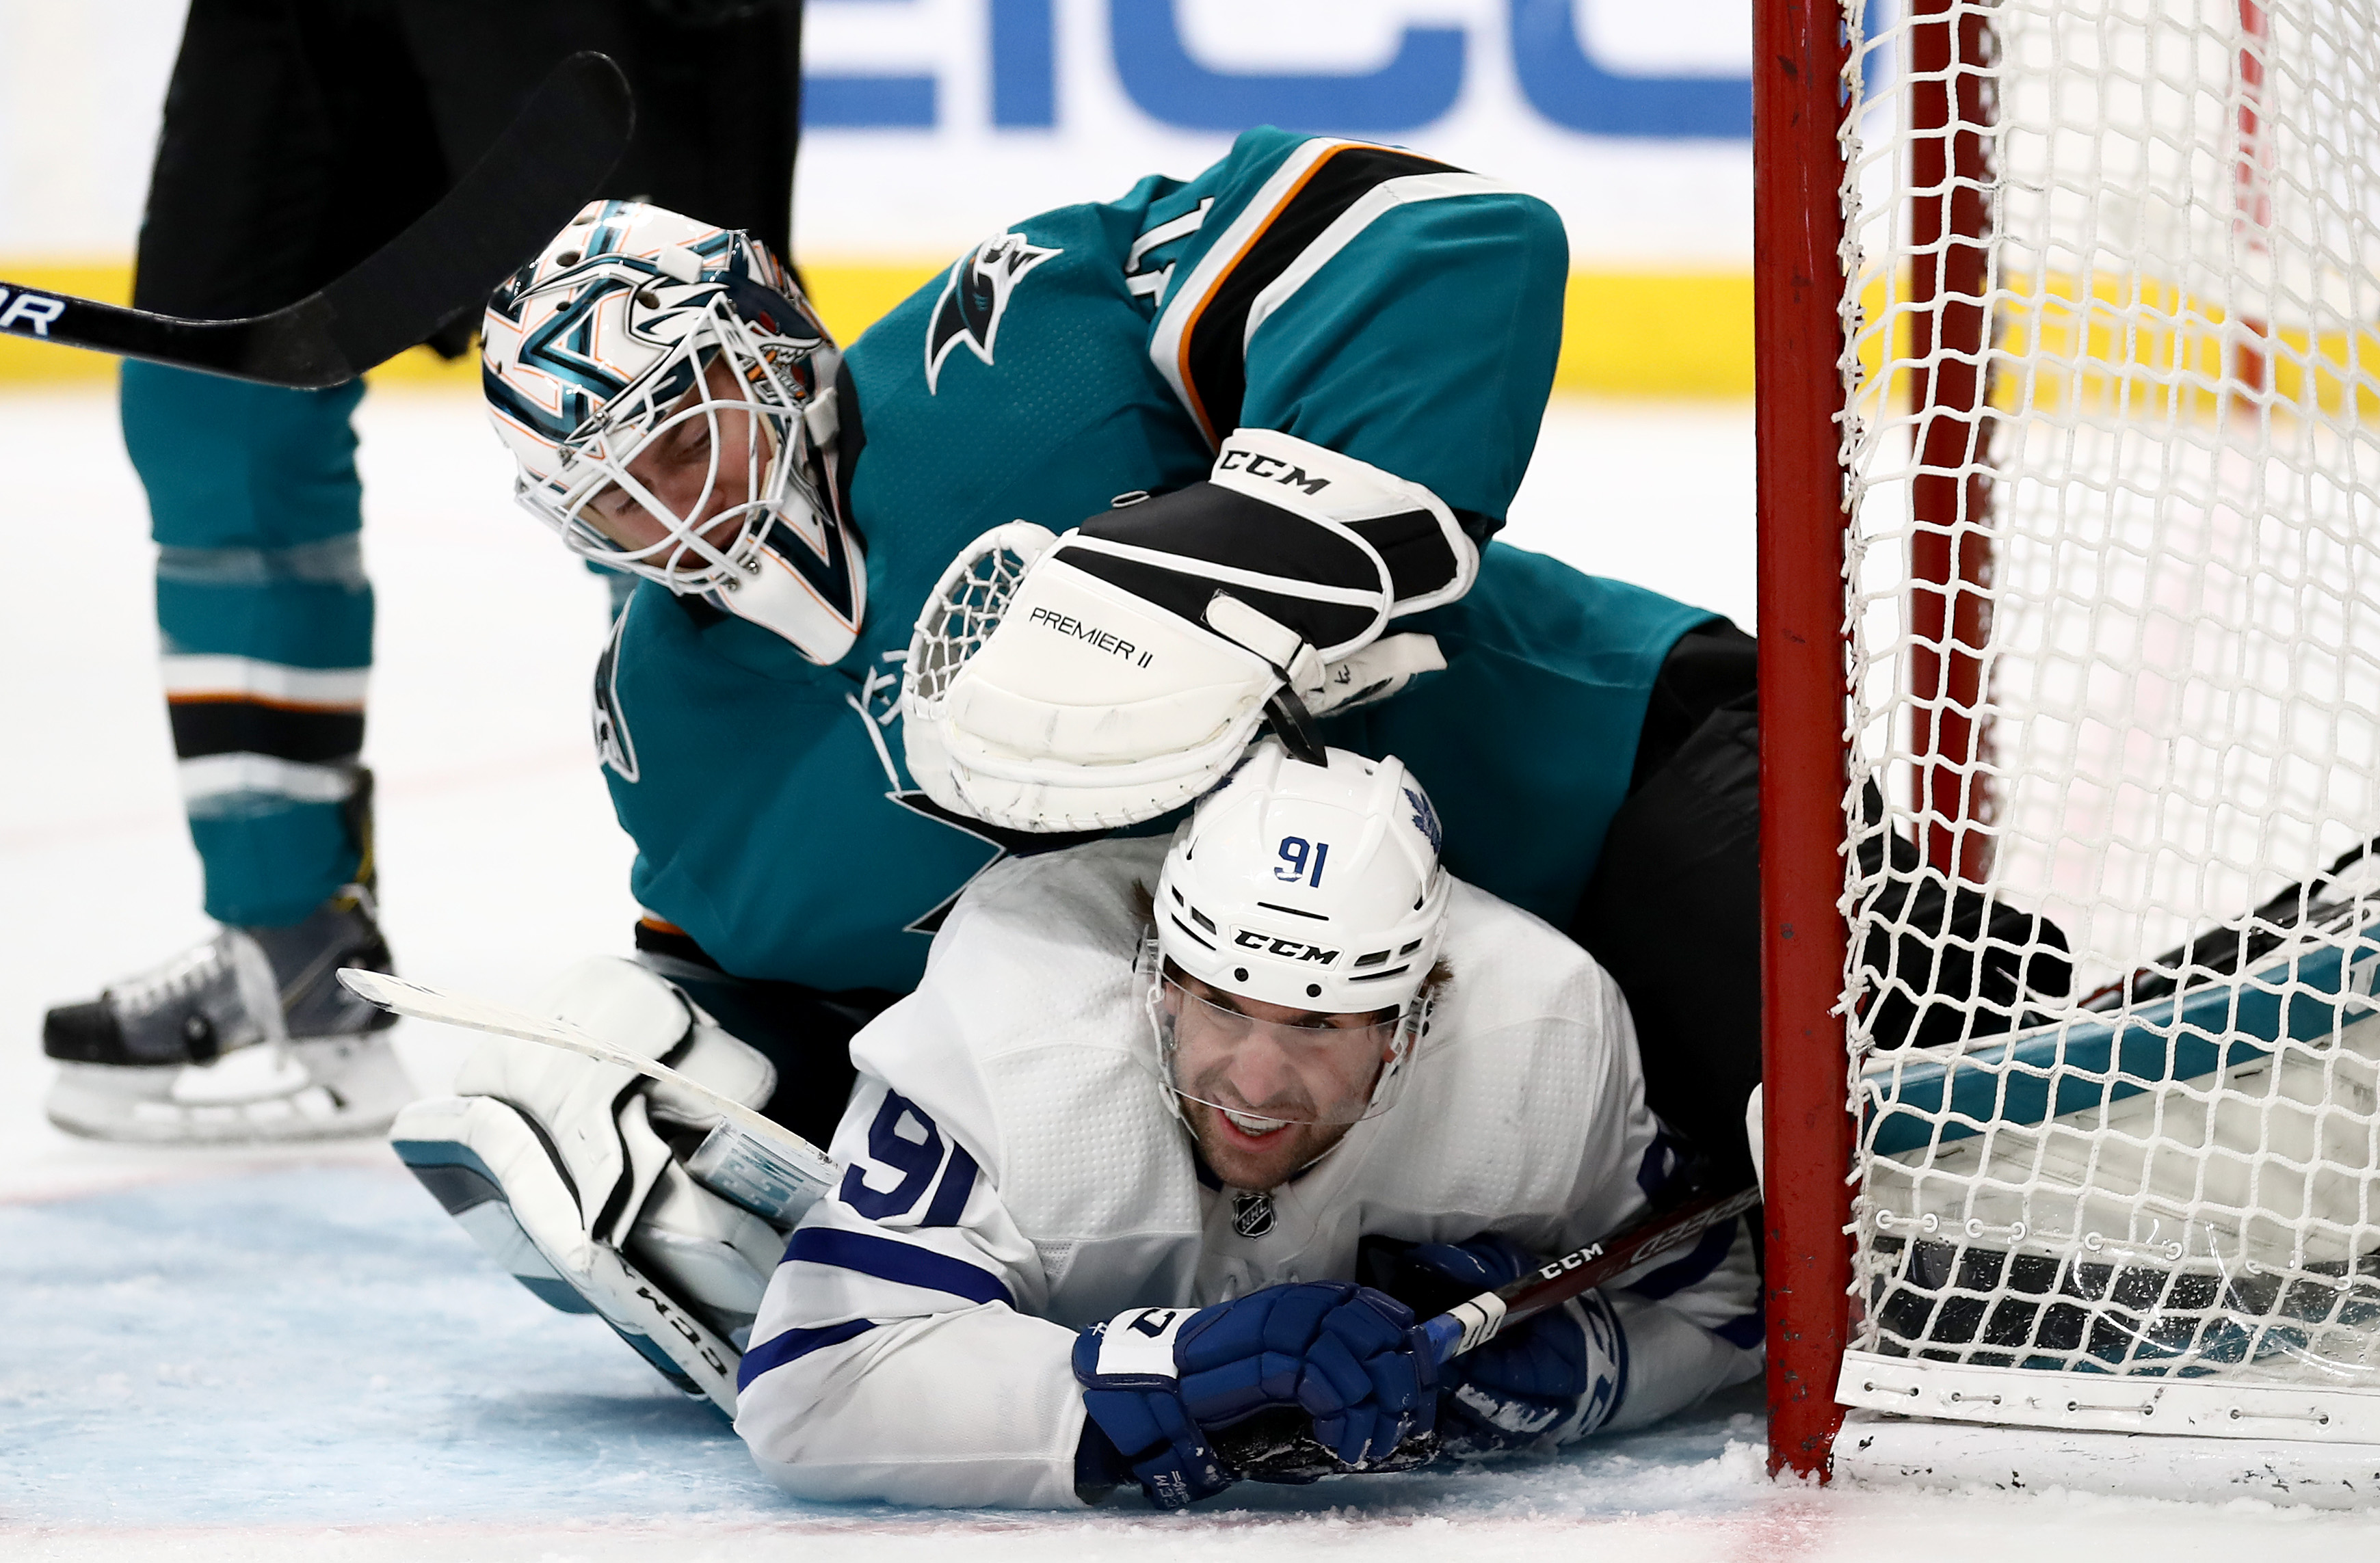 John Tavares #91 of the Toronto Maple Leafs collides with Martin Jones #31 of the San Jose Sharks at SAP Center on March 03, 2020 in San Jose, California.